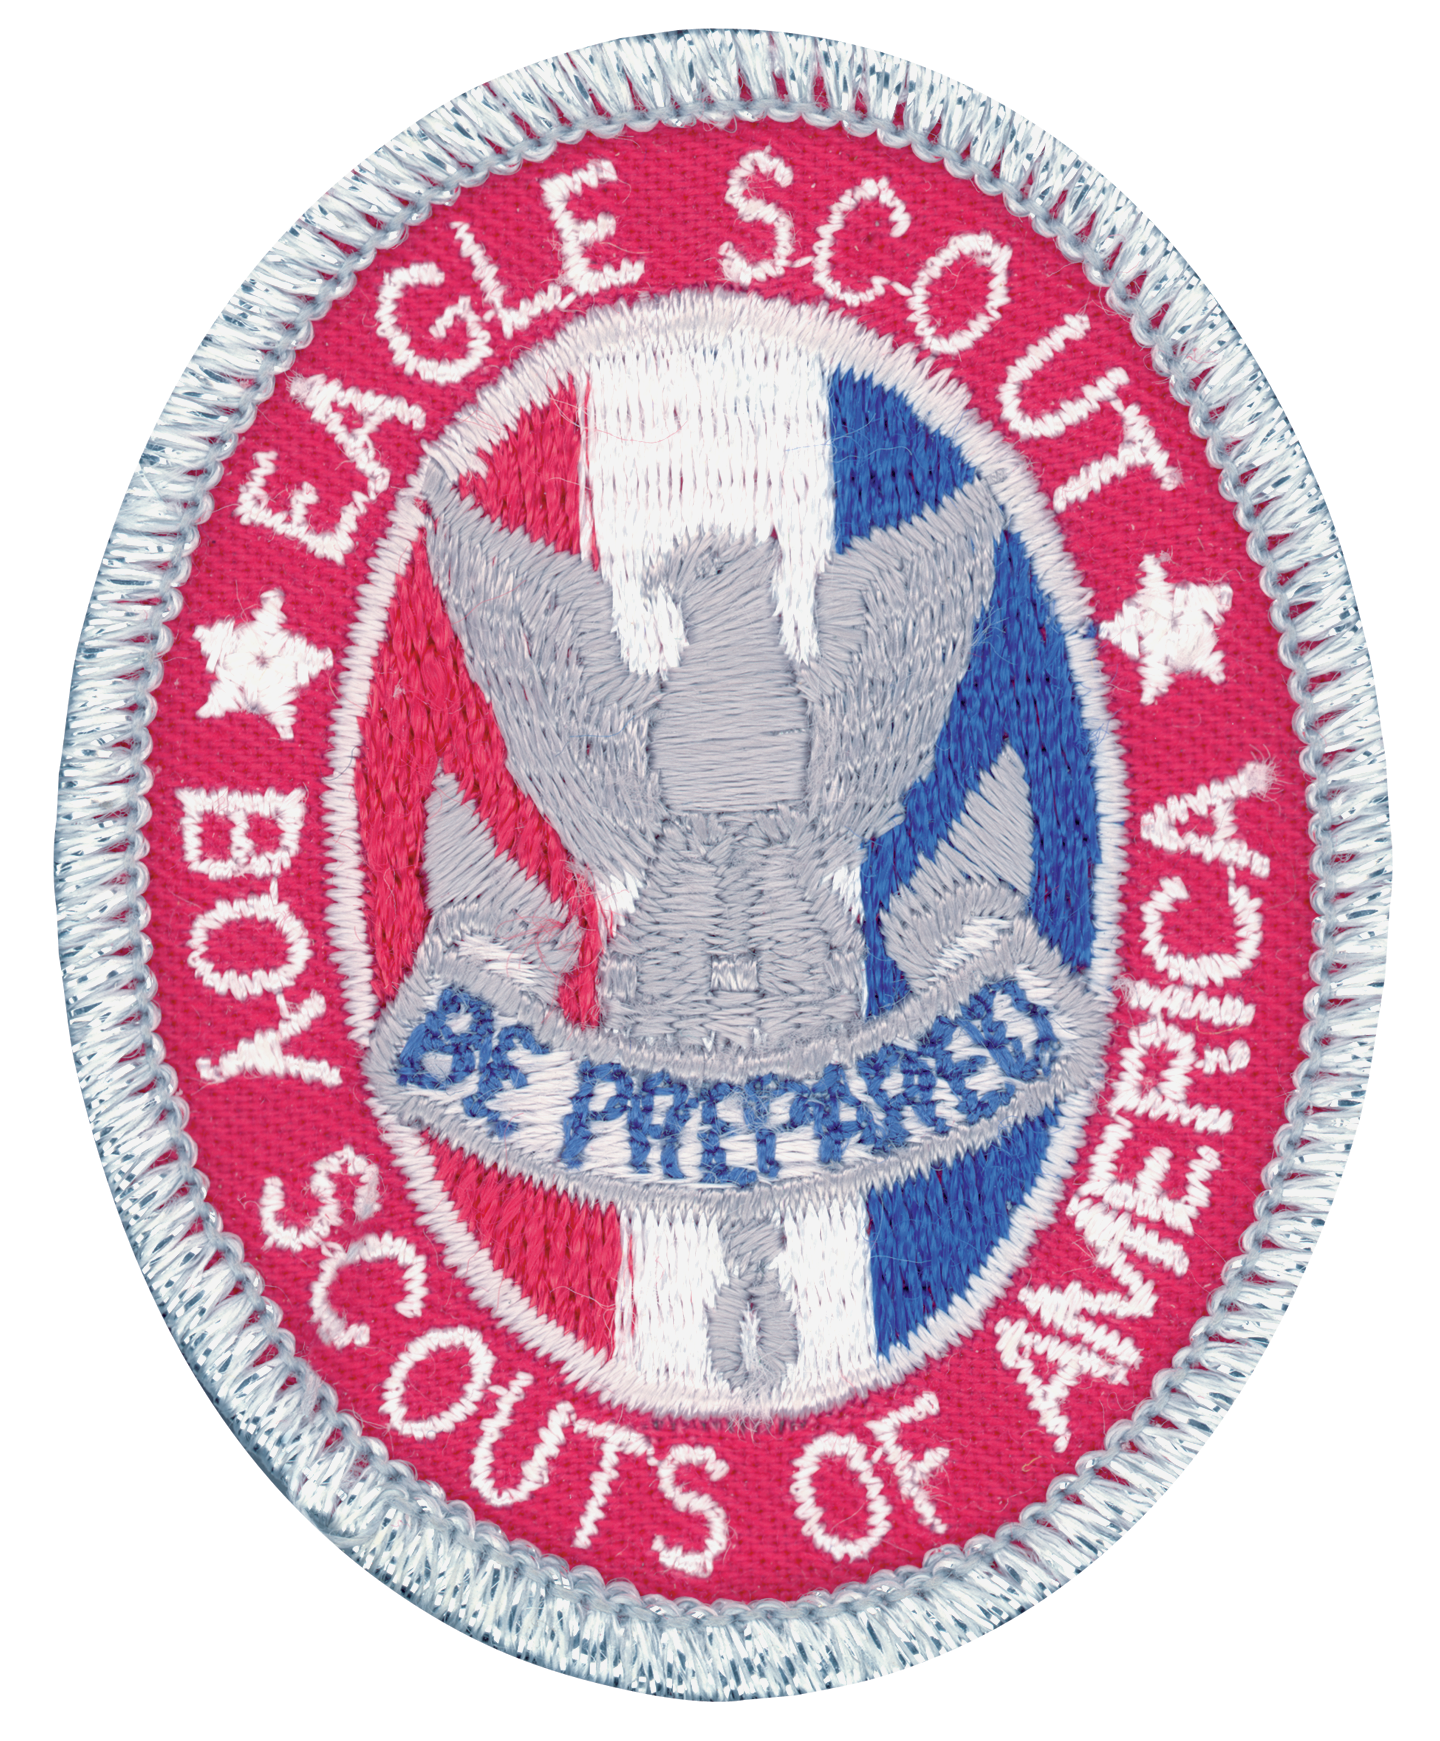 Eagle scout image - photo#41